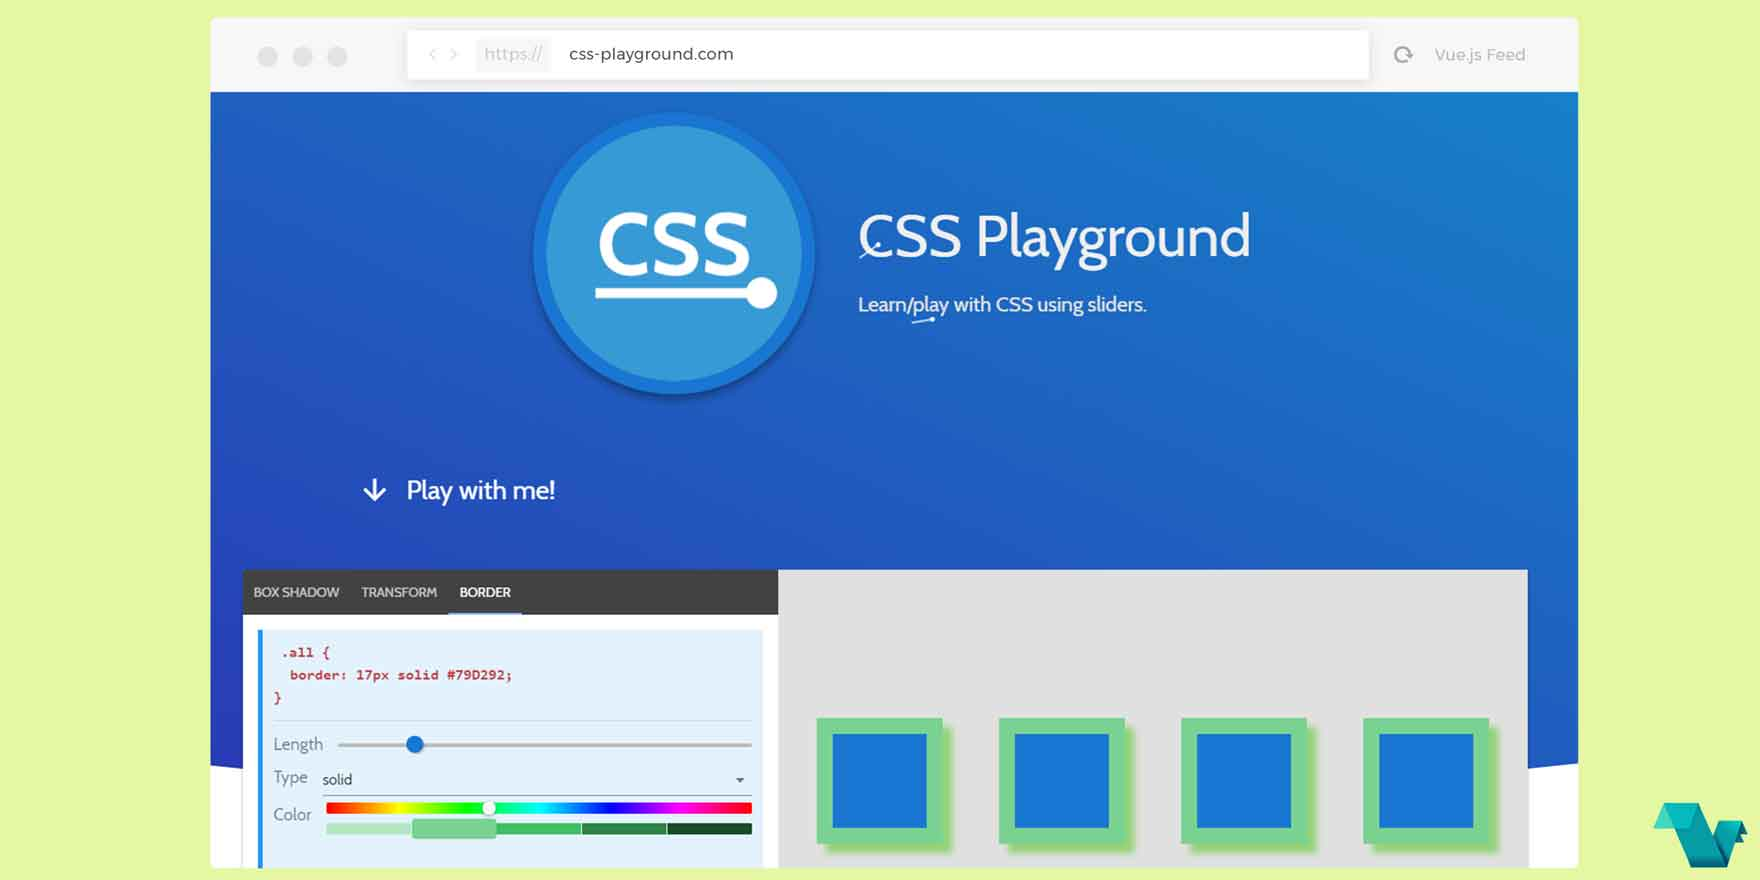 CSS Playground: A Nuxt js powered app - Vue js Feed